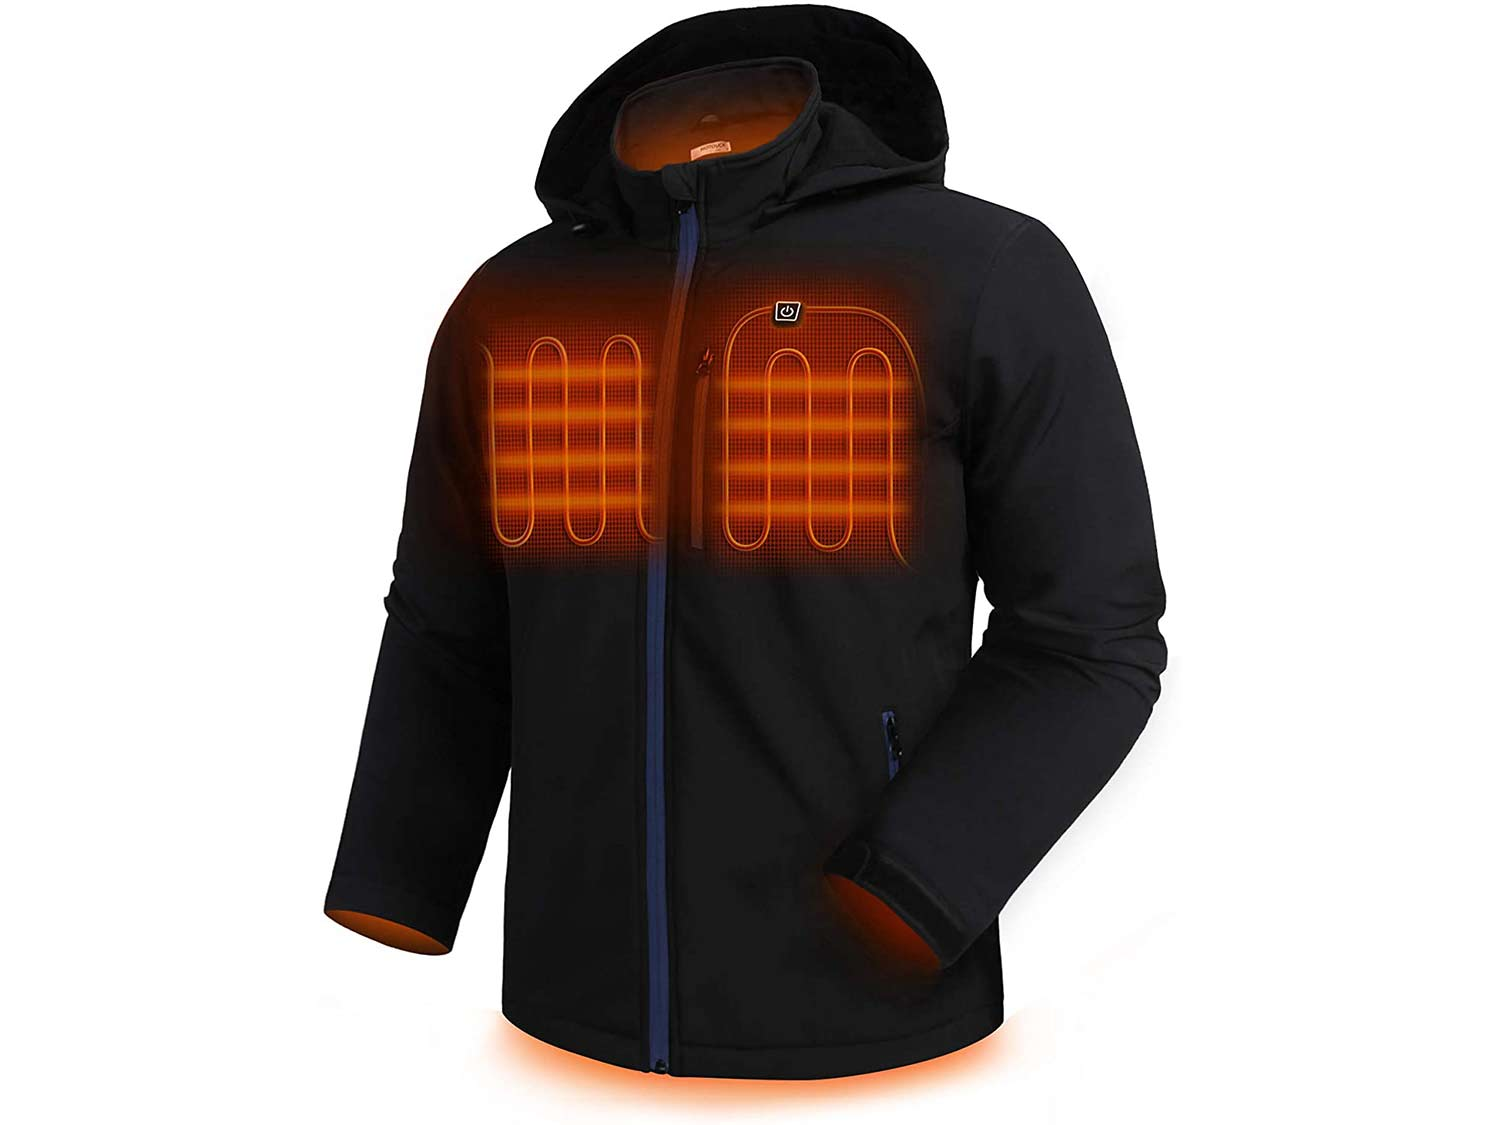 HOTOUCH Men's Heated Jacket Detachable Hood Coat Zipped Waterproof Thermal Clothing